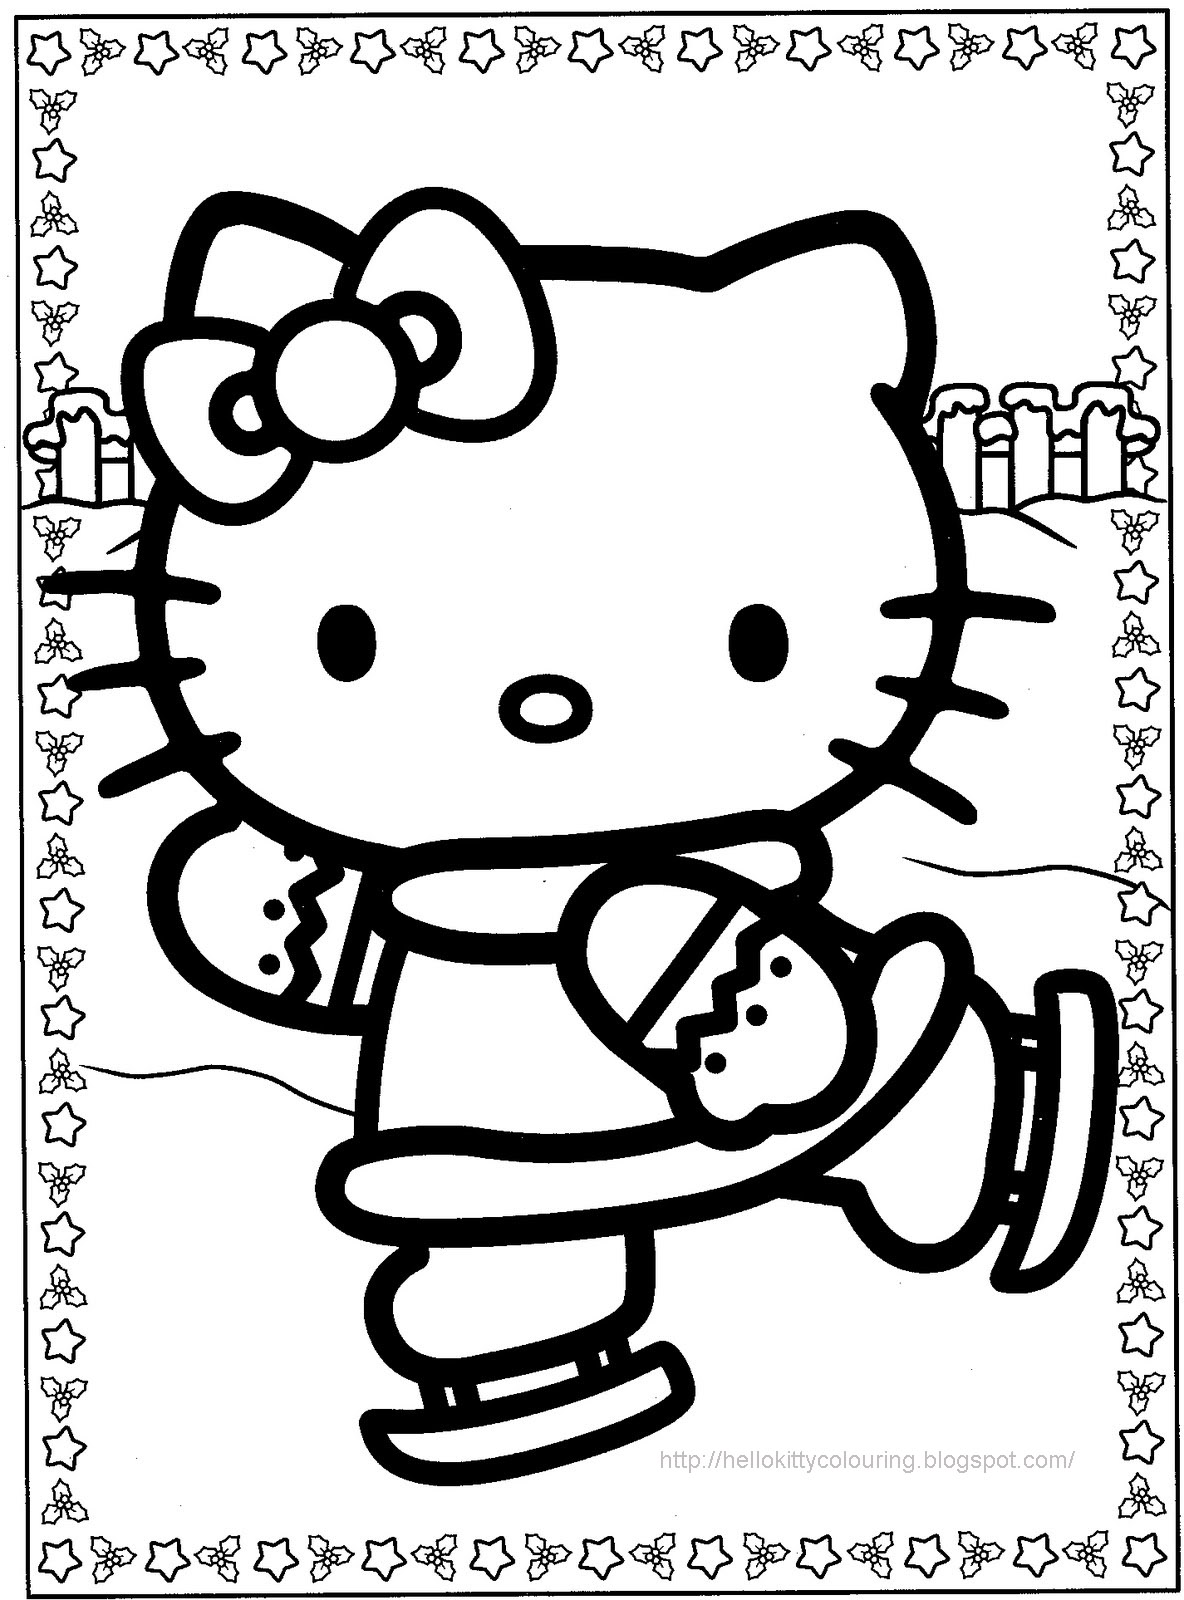 hello kitty free coloring pages hello kitty valentine coloring pages coloring home free kitty hello pages coloring